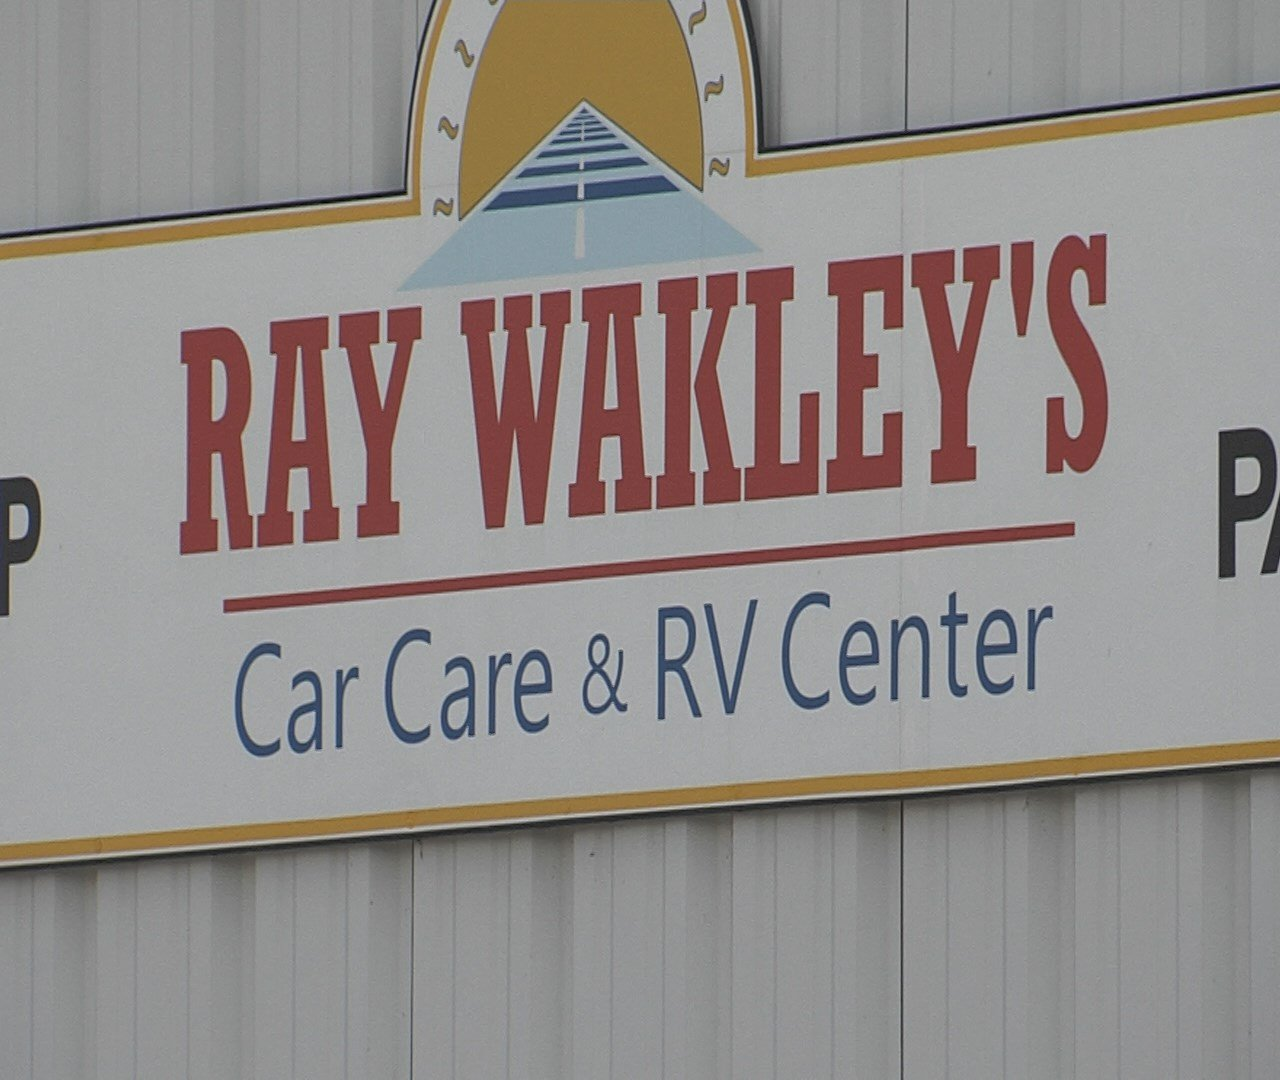 Ray Wakley S Car Care Amp Rv Center Giving You The Business